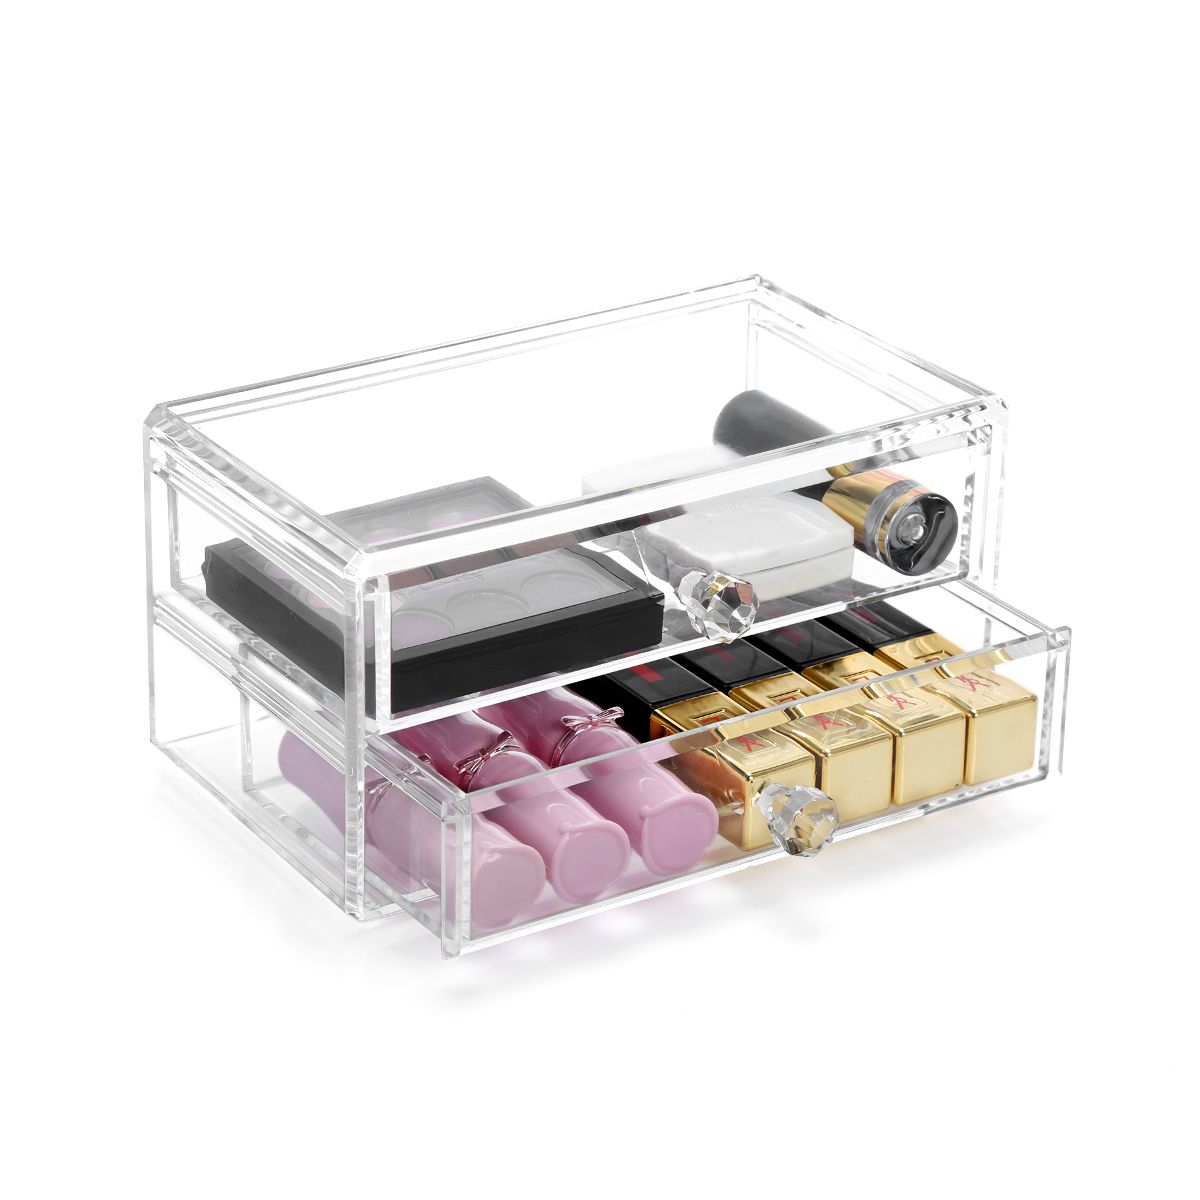 Home Storage Container 2 Drawers Acrylic Makeup Organizer Lipstick Nail Polish Clear Plastic Cosmetic Plastic Box Storage Plastic Storage Bins Plastic Dresser